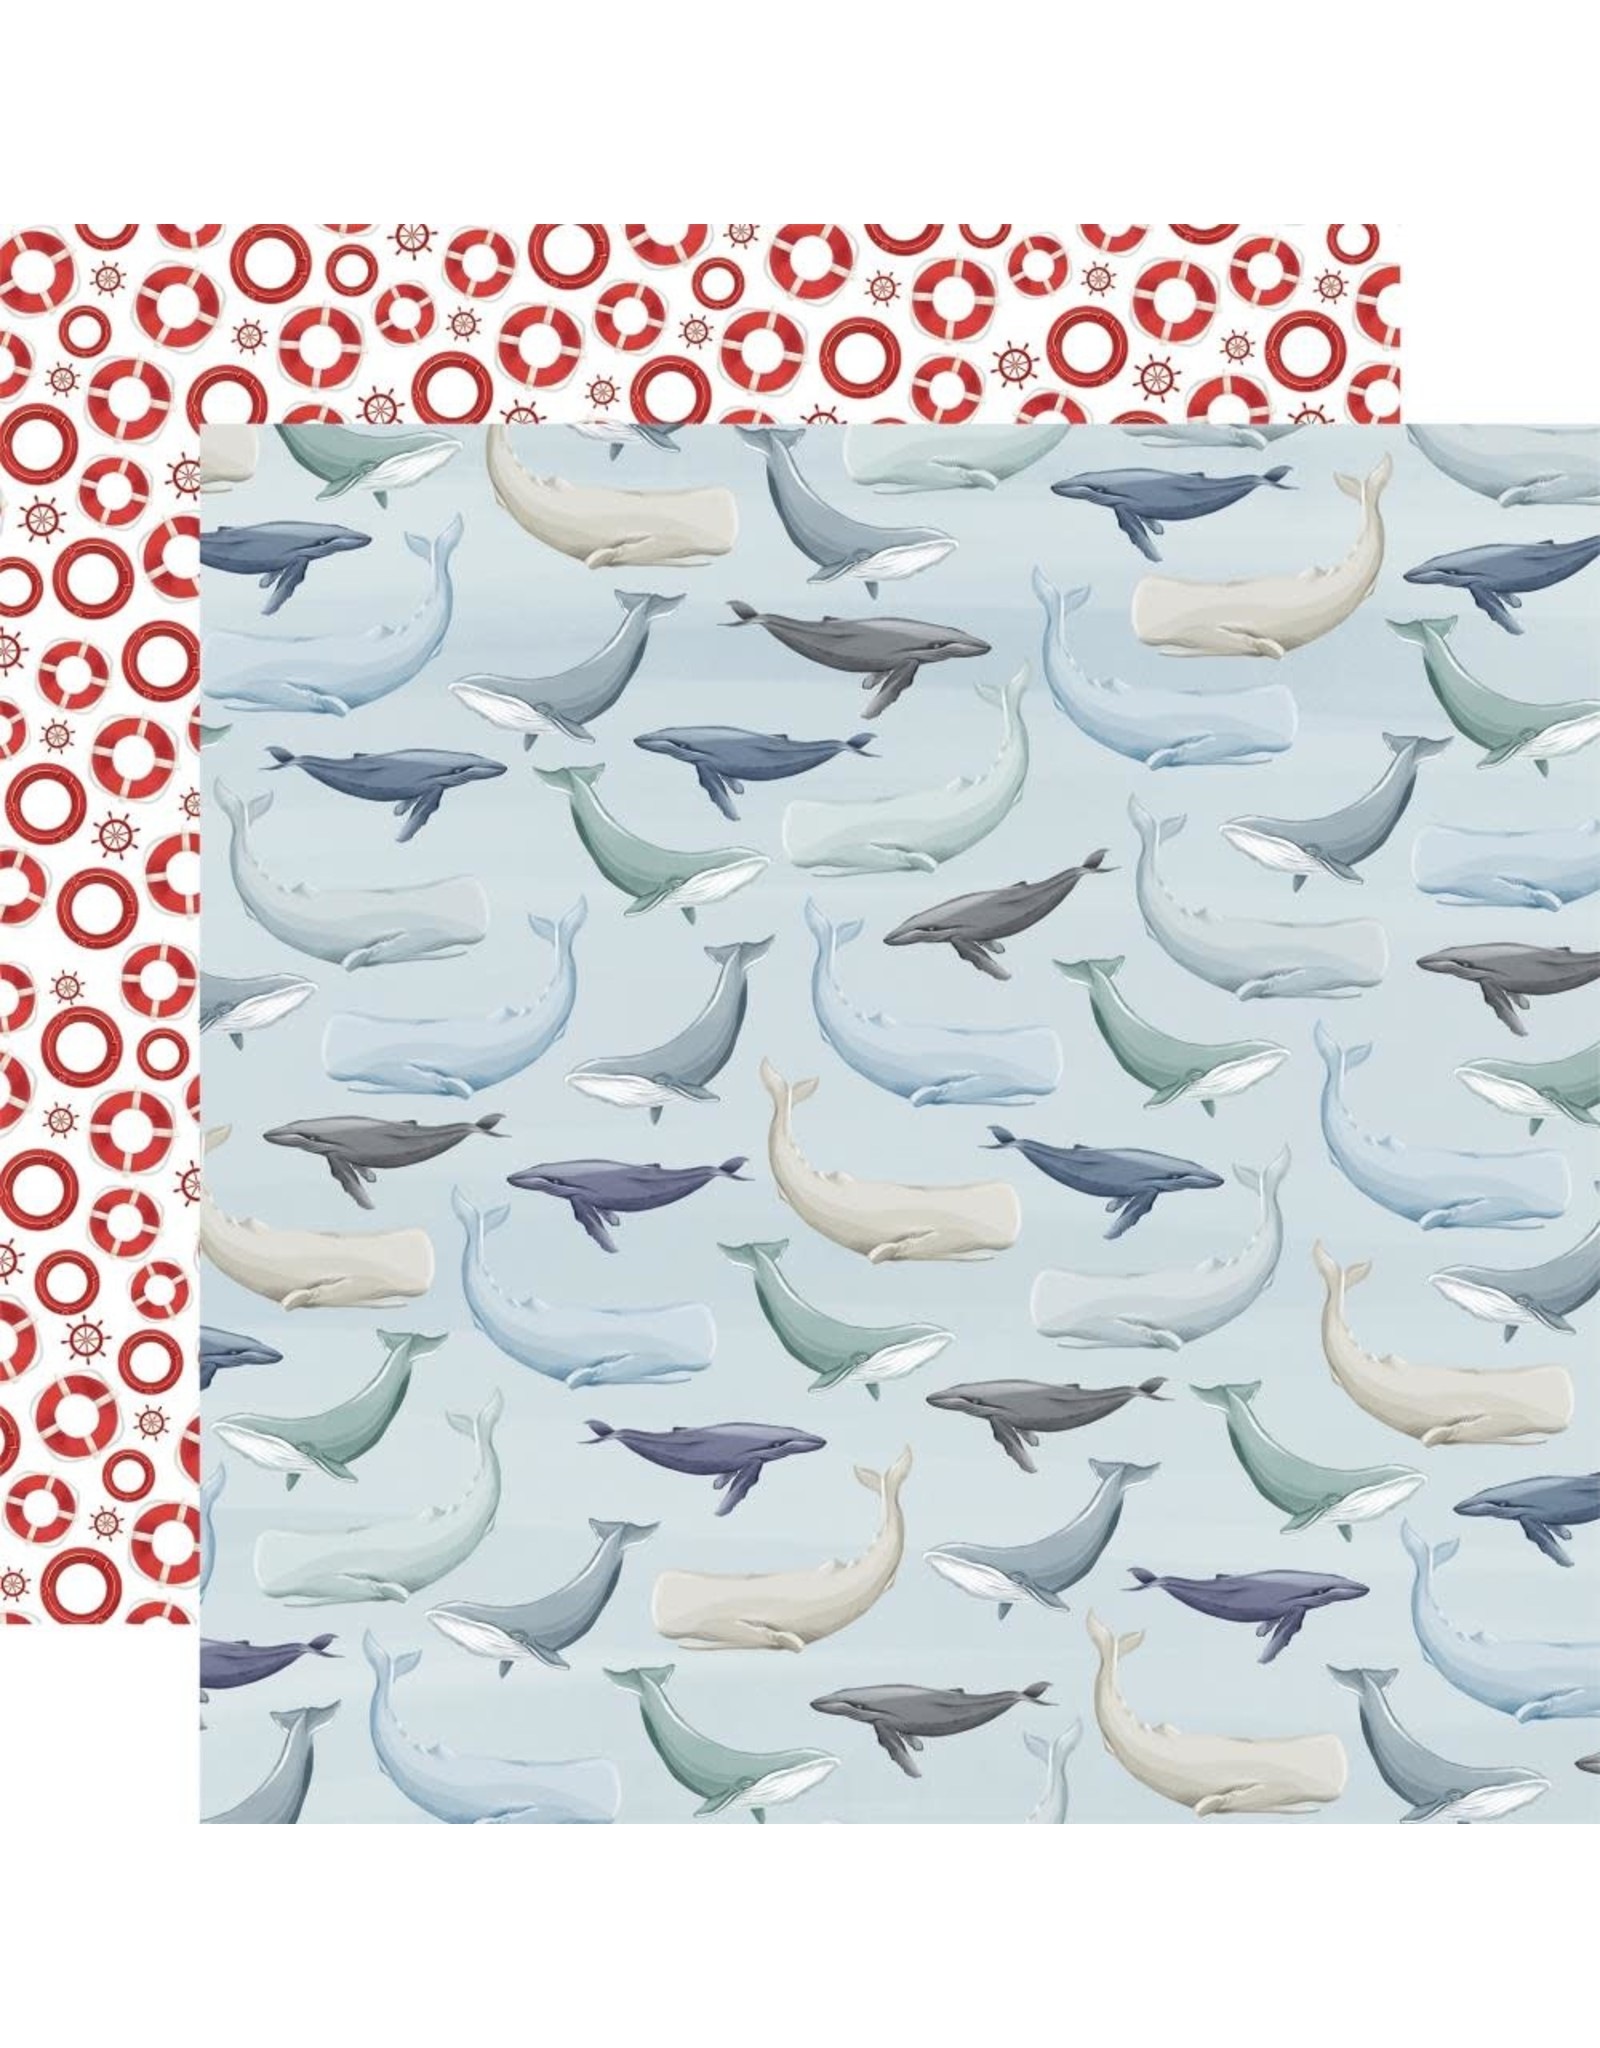 Carta Bella Paper Company, LLC By the Sea Collection - Whales